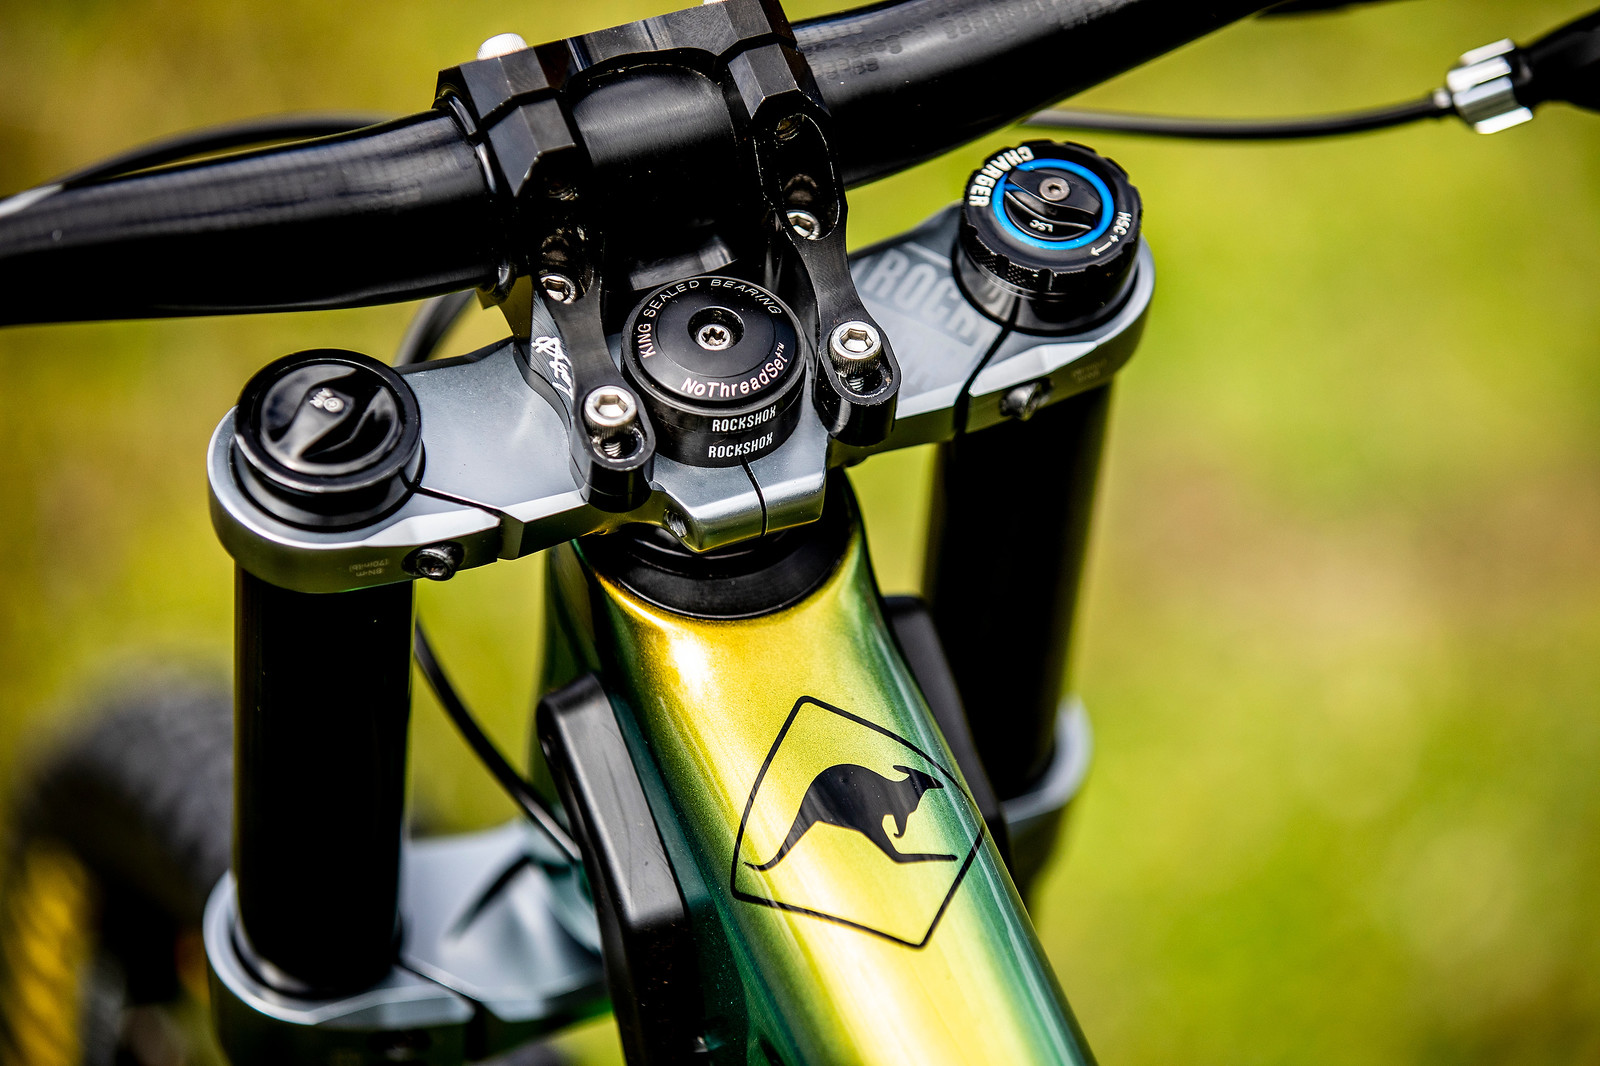 Cockpit - WORLD CHAMPS BIKE - Connor Fearon's Kona Operator - Mountain Biking Pictures - Vital MTB